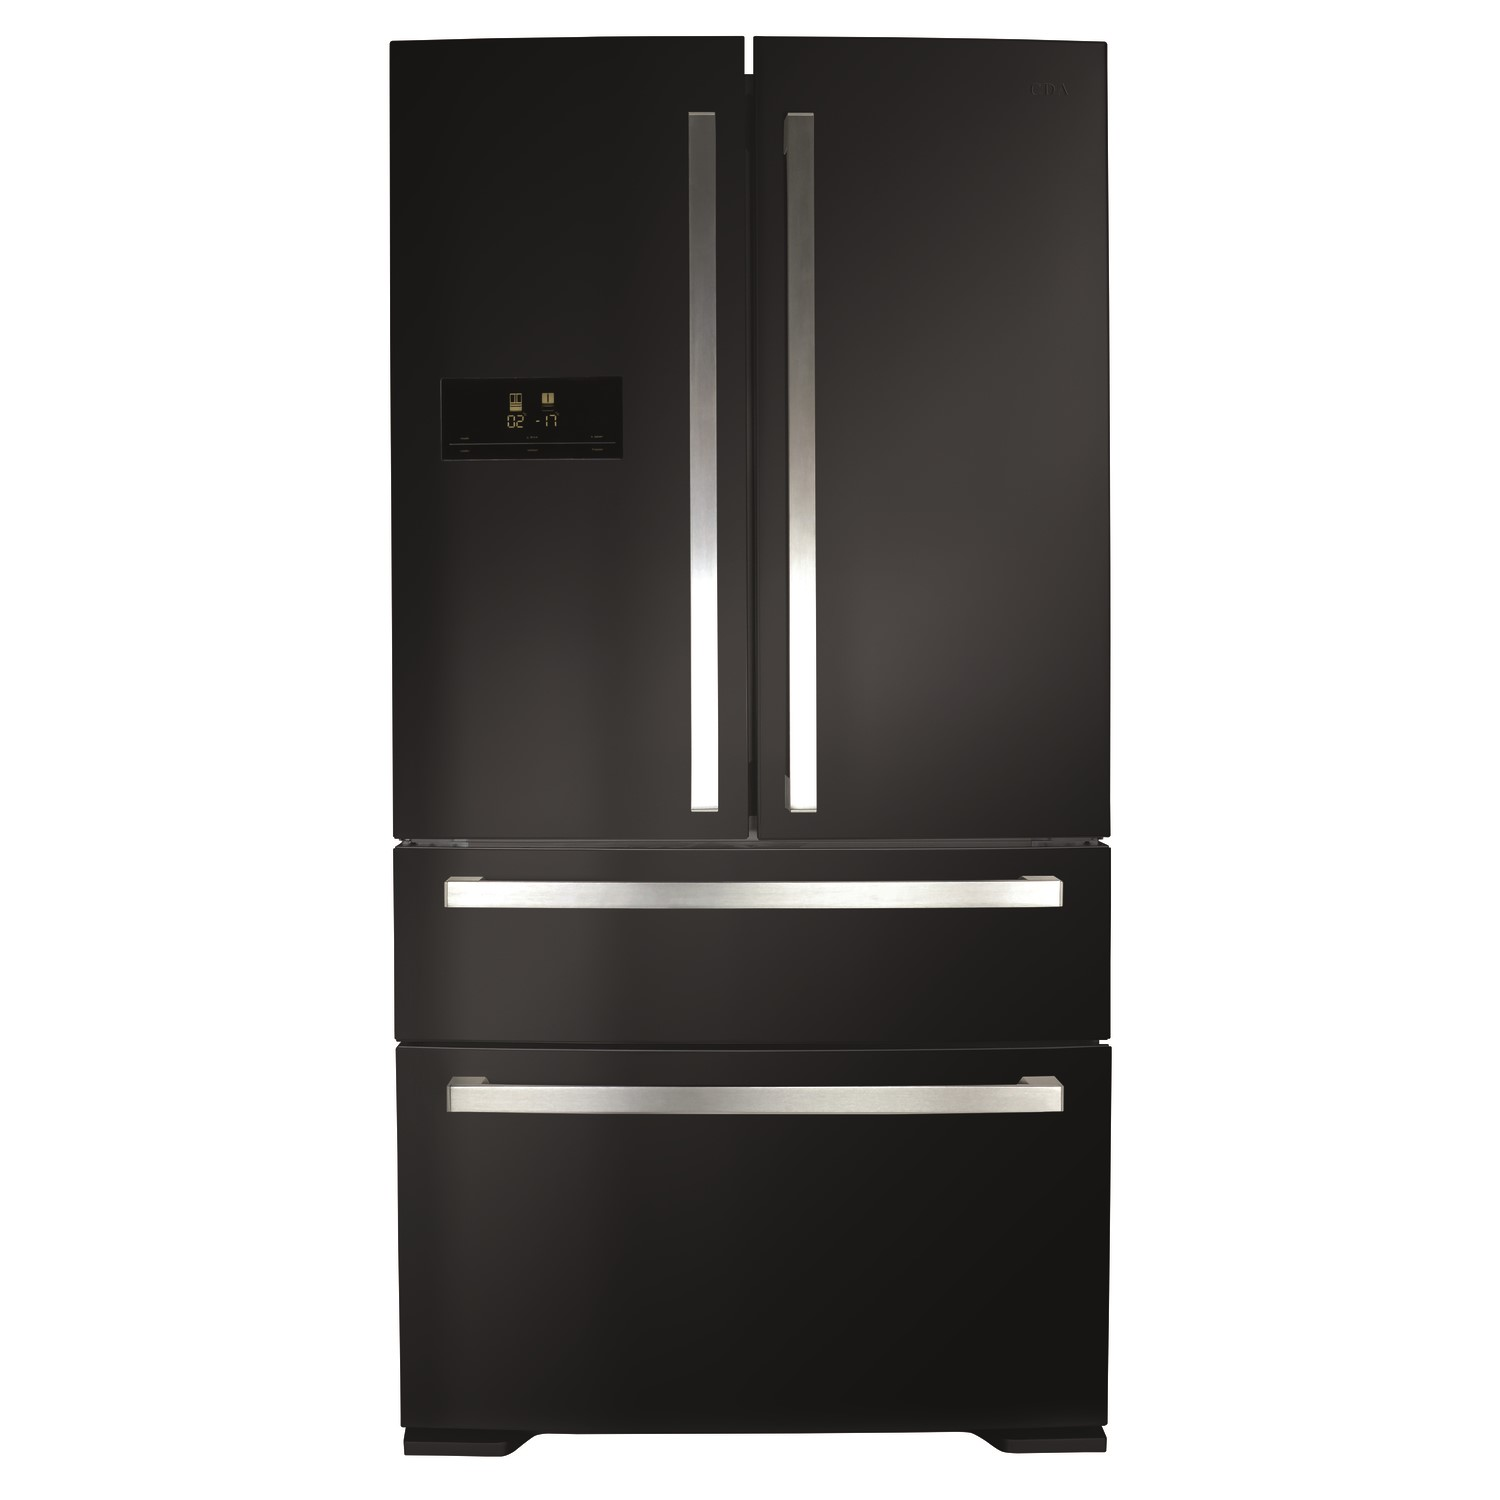 Nice American Fridge Freezer With Drawers Part - 12: CDA PC870BL American Style 2 Door Fridge With Pullout Freezer Drawers -  Black Colour - A